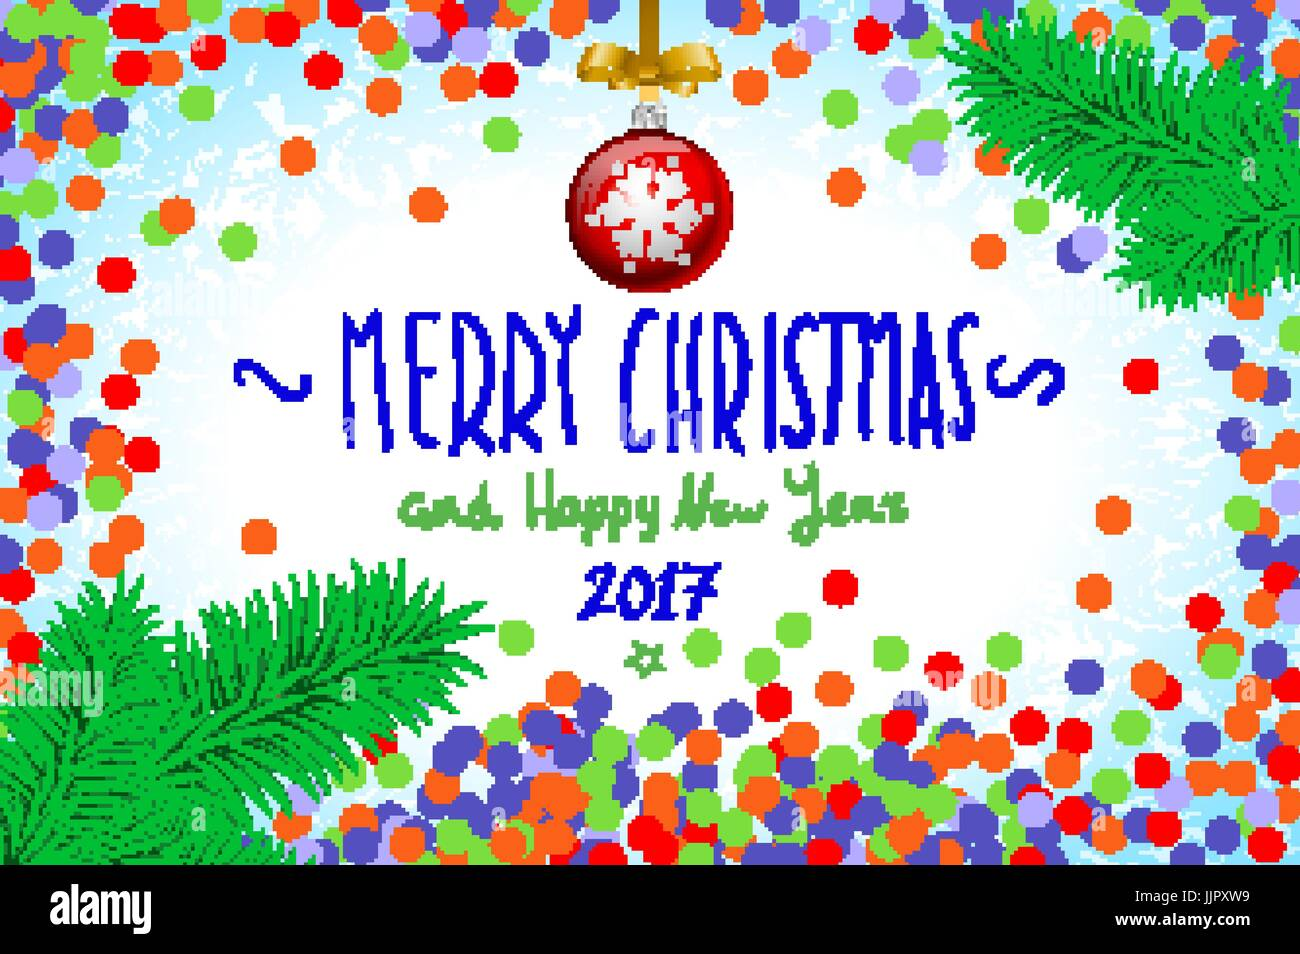 Merry Christmas And Happy New Year 2016 Greeting Card Vector Stock